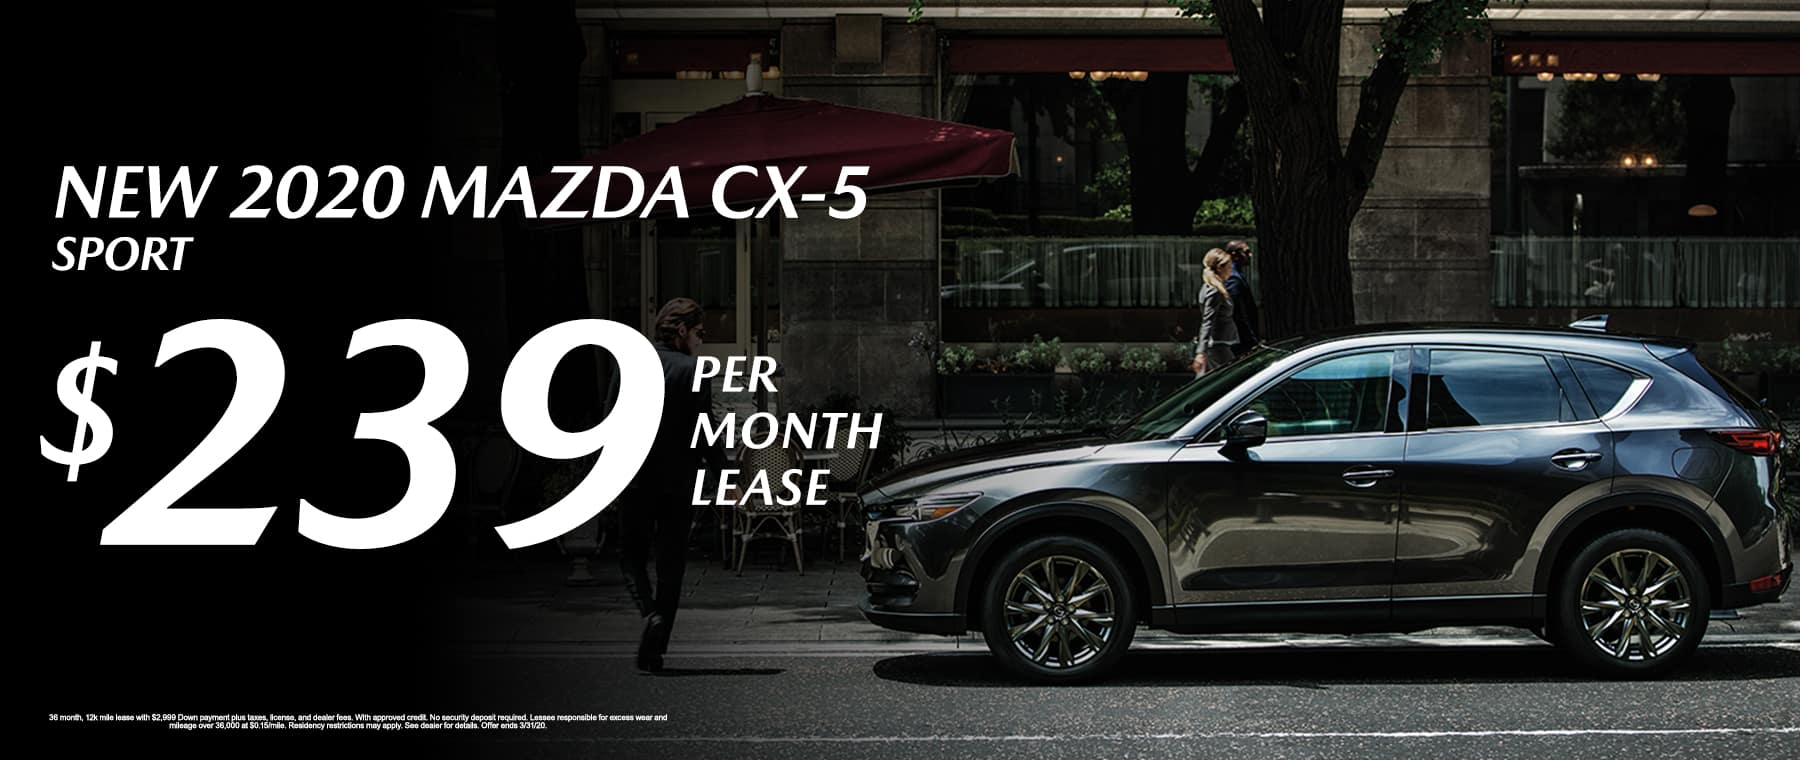 New 2020 Mazda CX-5 Sport Lease For $239/mo.